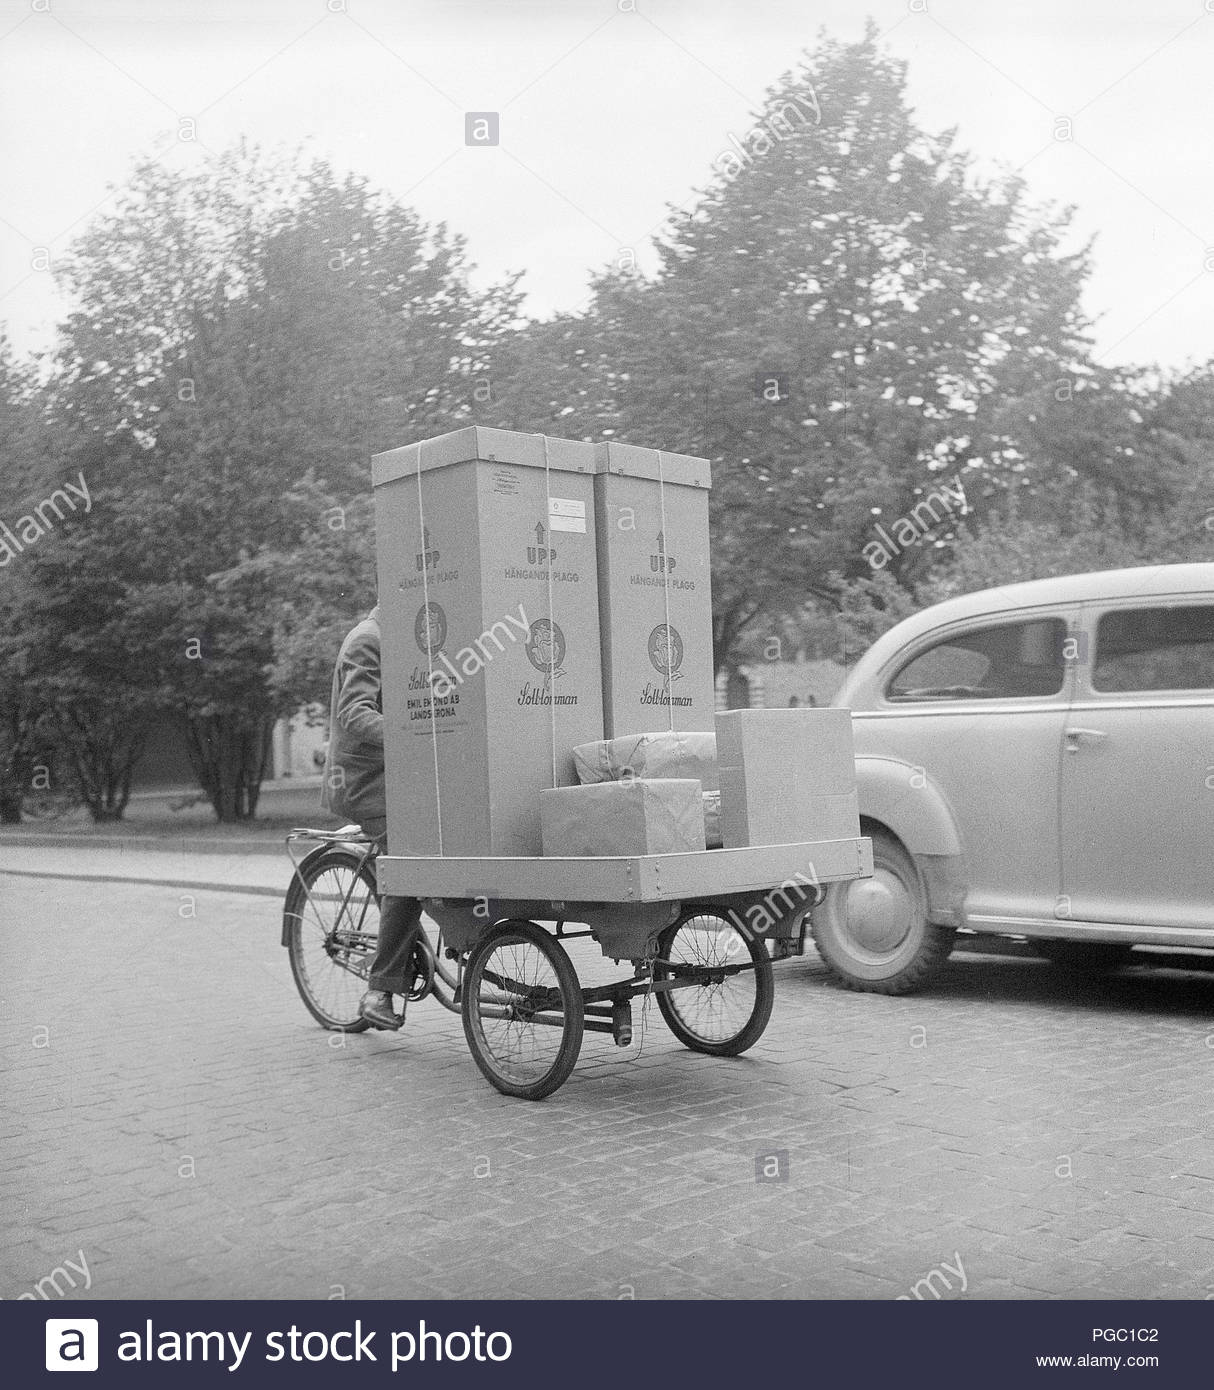 1950s-transportation-a-man-is-working-as-a-bicycle-messanger-and-transporting-goods-in-stockho...jpg